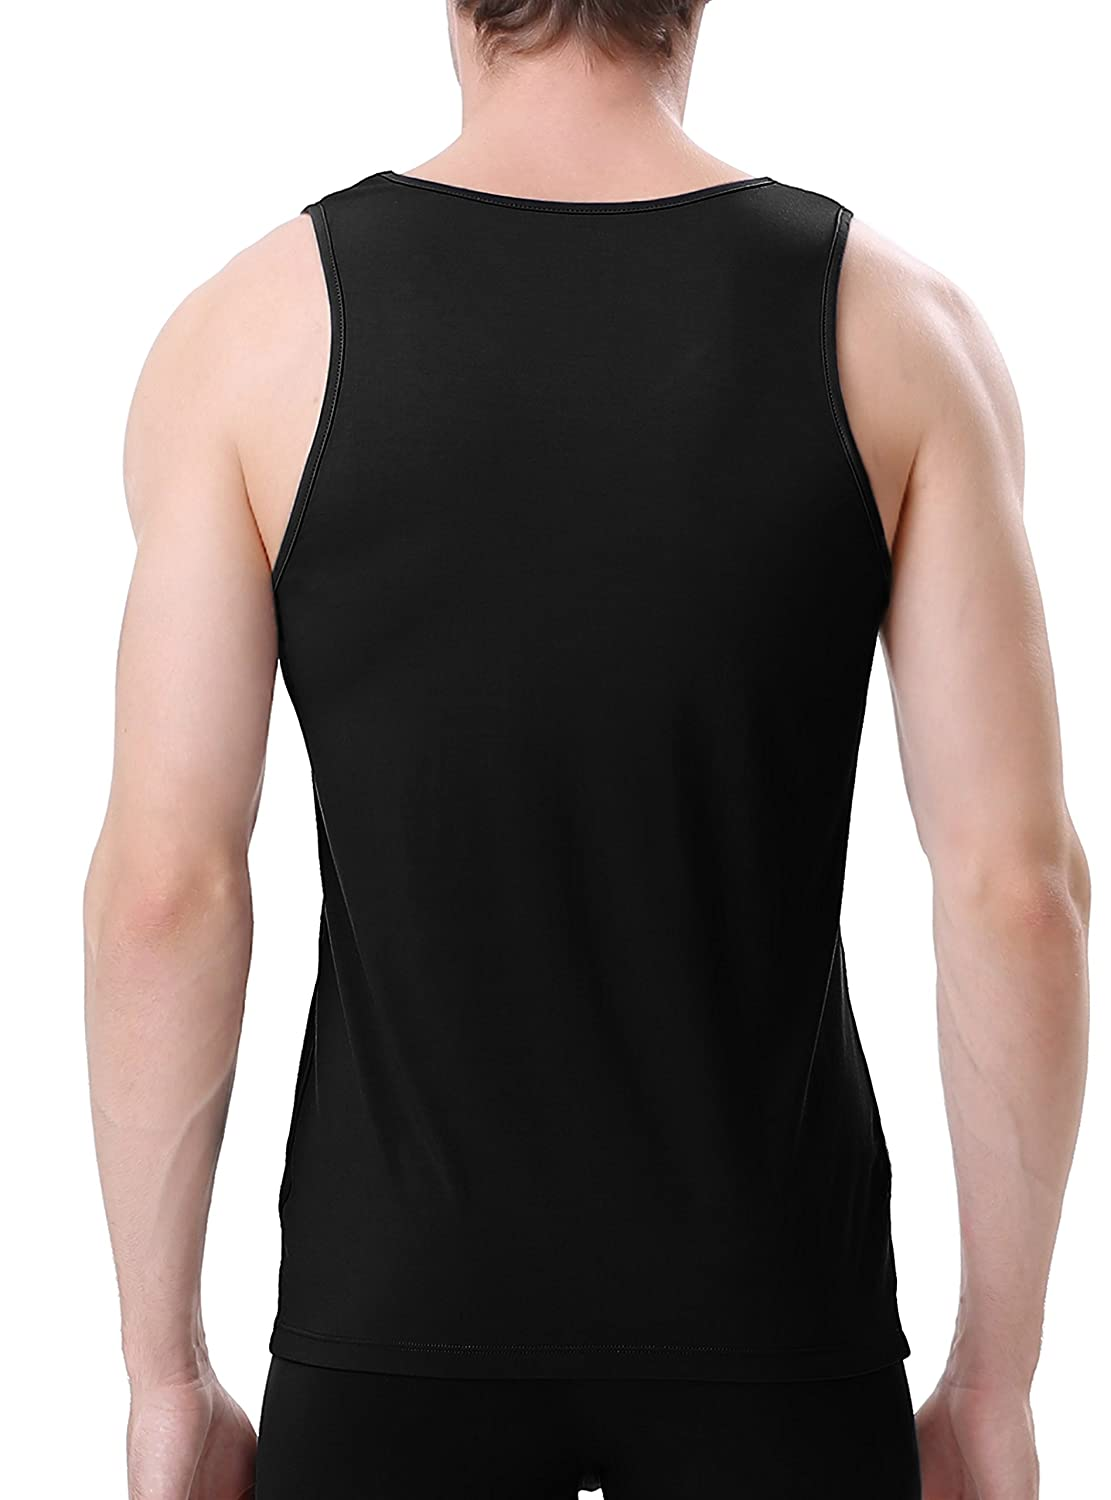 f4ff571136ee1 Amazon.com  David Archy Men s Bamboo Rayon   Cotton Undershirts Crew Neck  Tank Tops in 3 or 4 Pack  Clothing